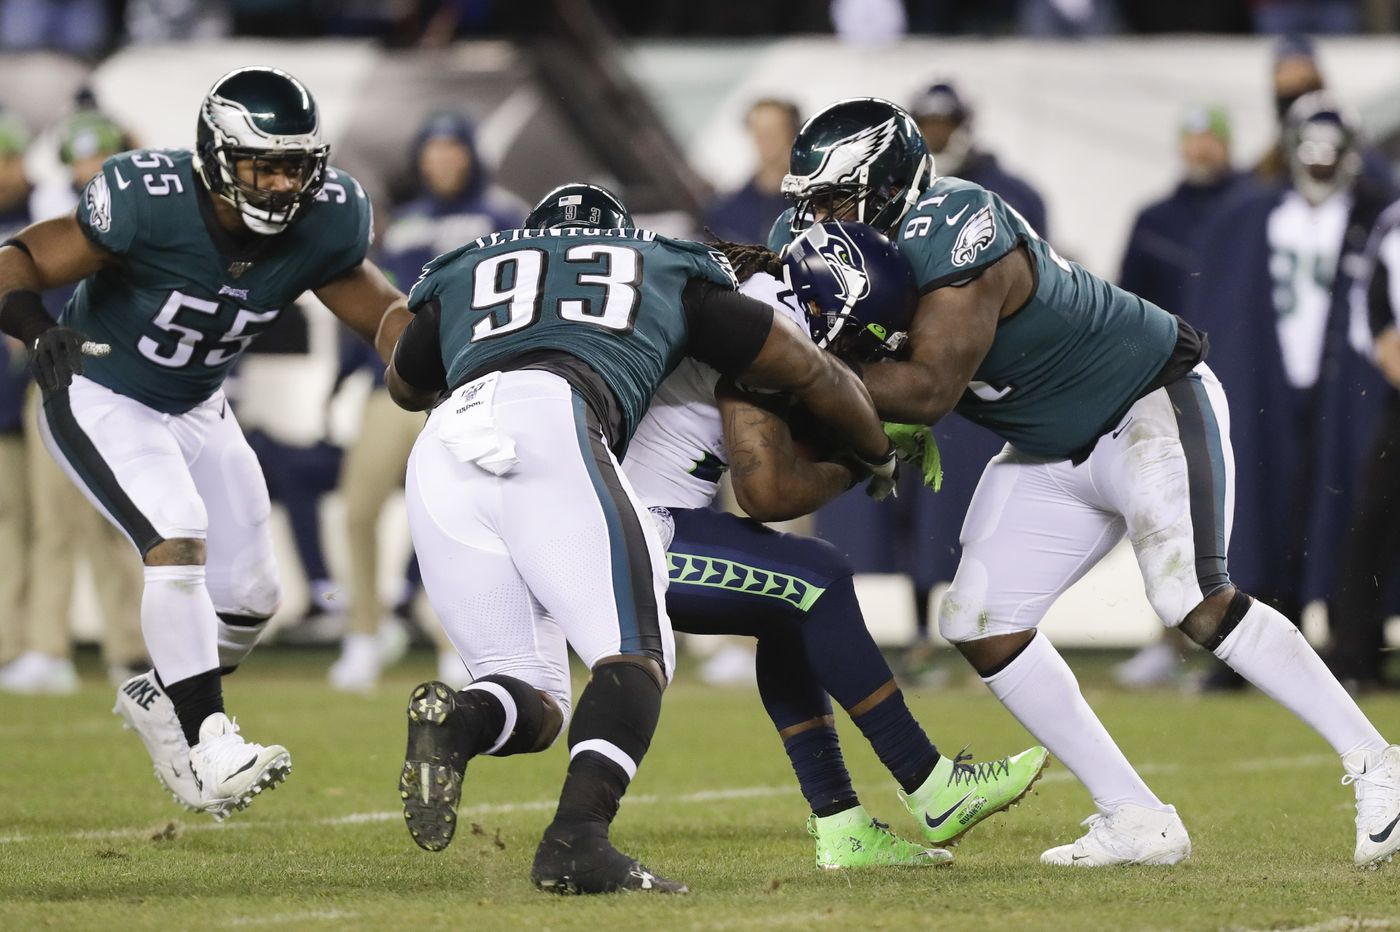 Eagles positional preview: Defensive tackles